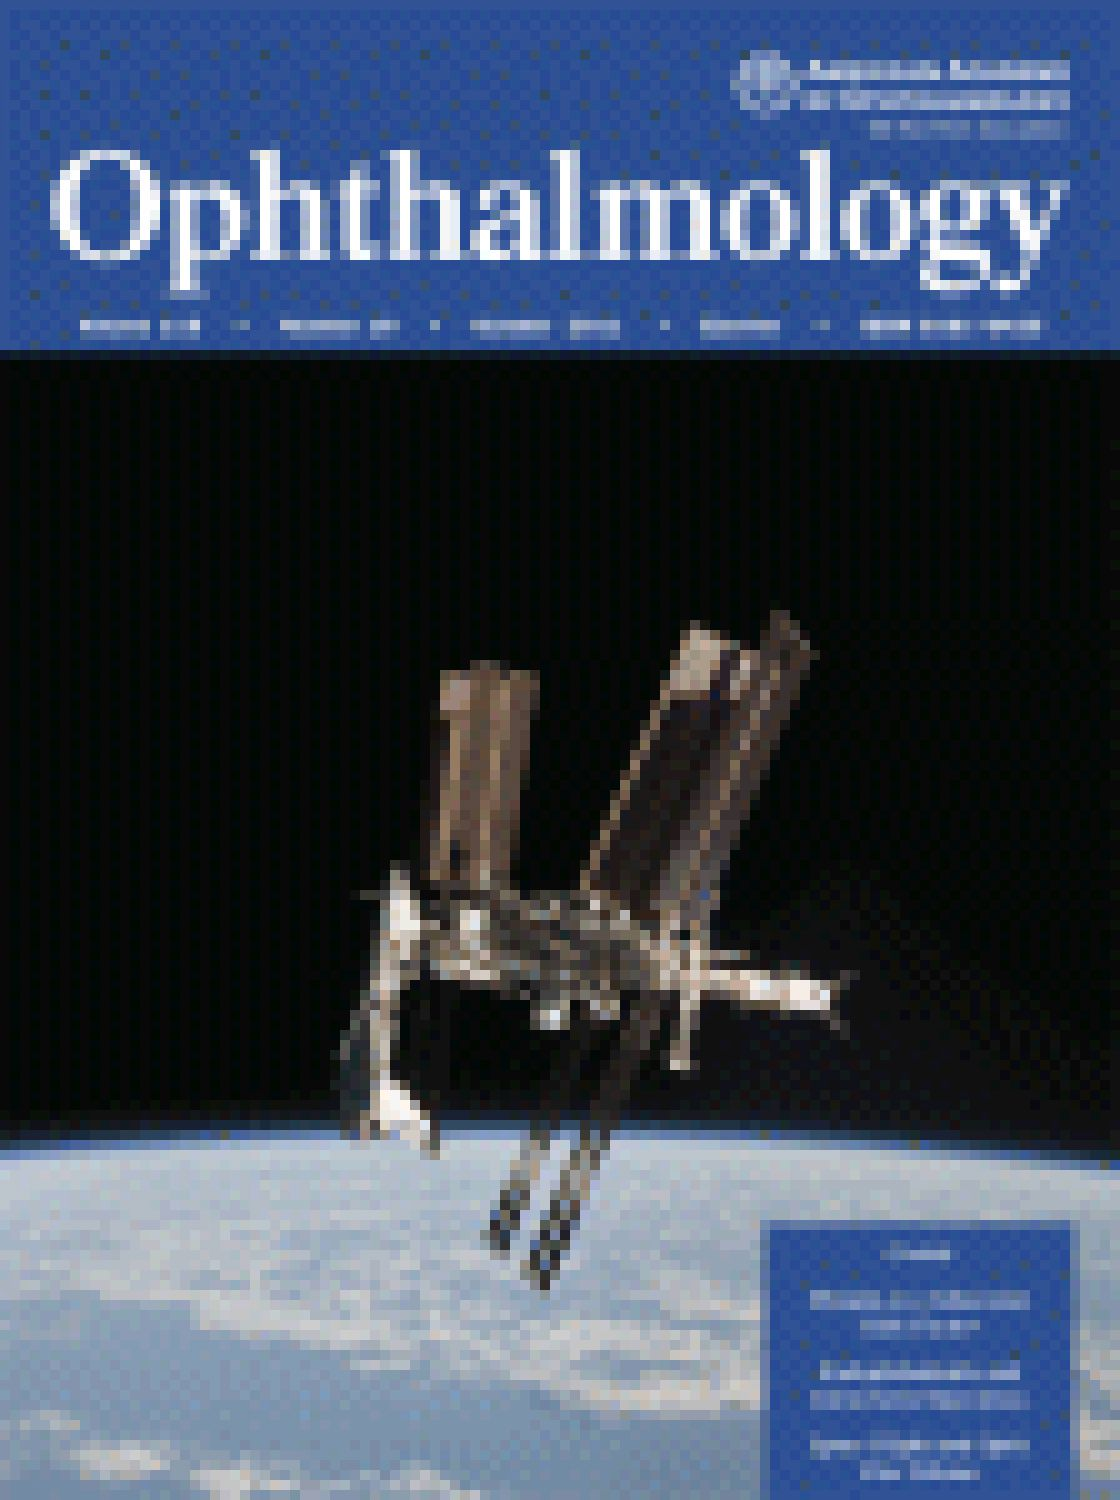 Retinal nerve fiber layer thickness in dominant optic atrophy: measurements by optical coherence tomography and correlation with age